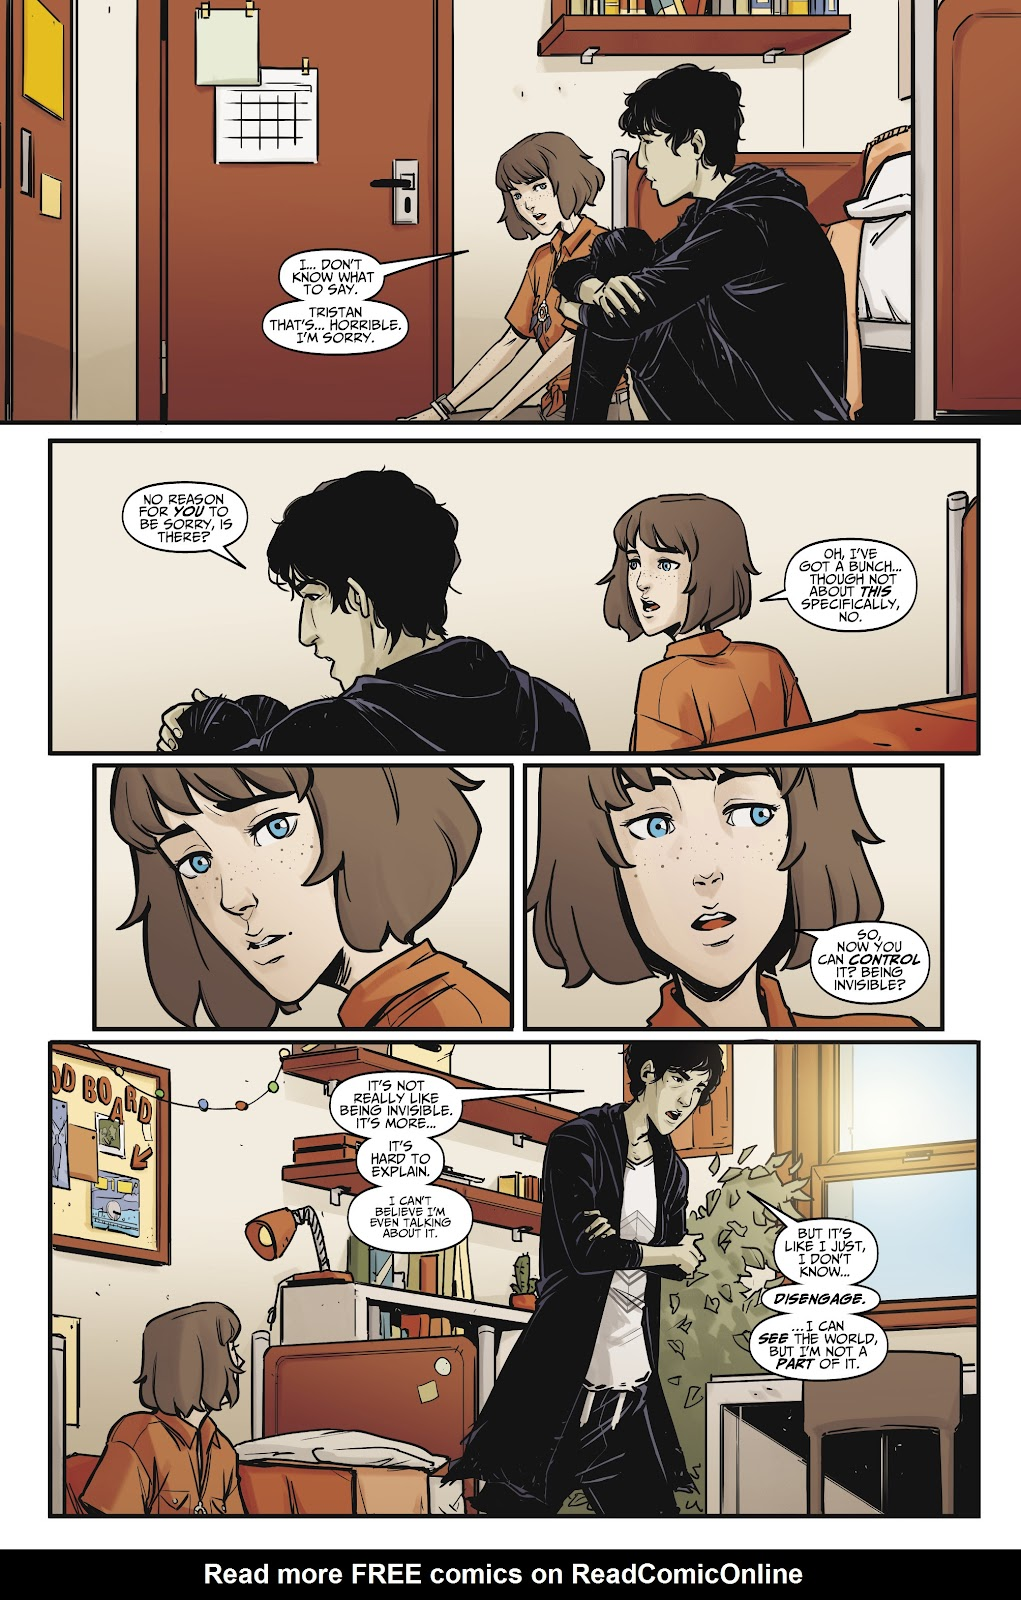 Read online Life is Strange comic -  Issue #7 - 12